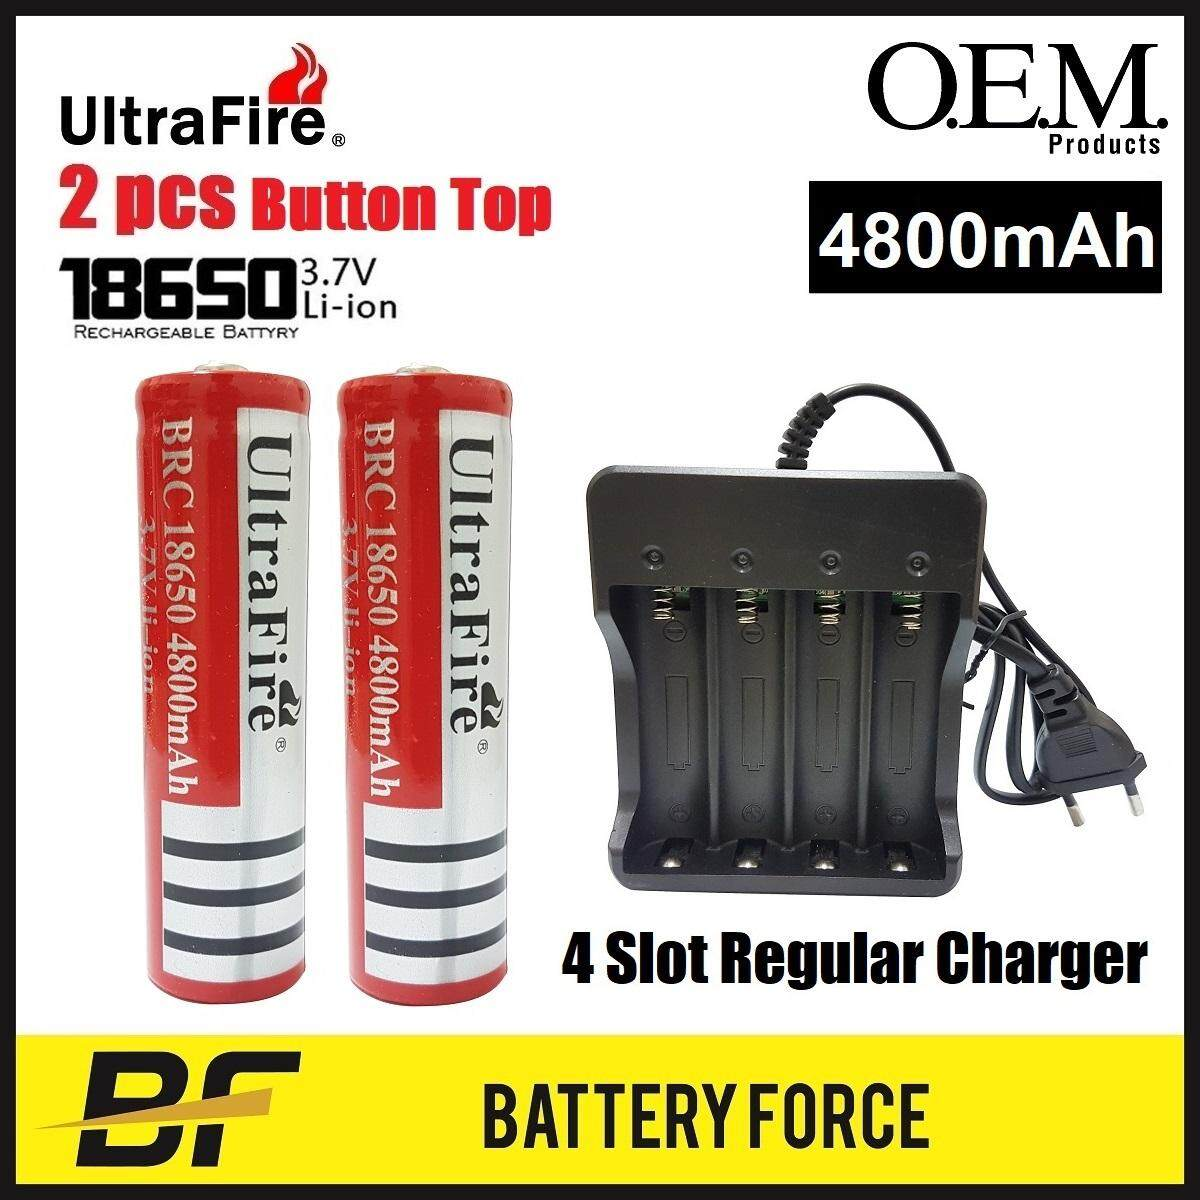 Combo 3.7V 18650 UltraFire 4800mAH Button Top Rechargeable Lithium Ion Battery BRC With 4 Slot Charger